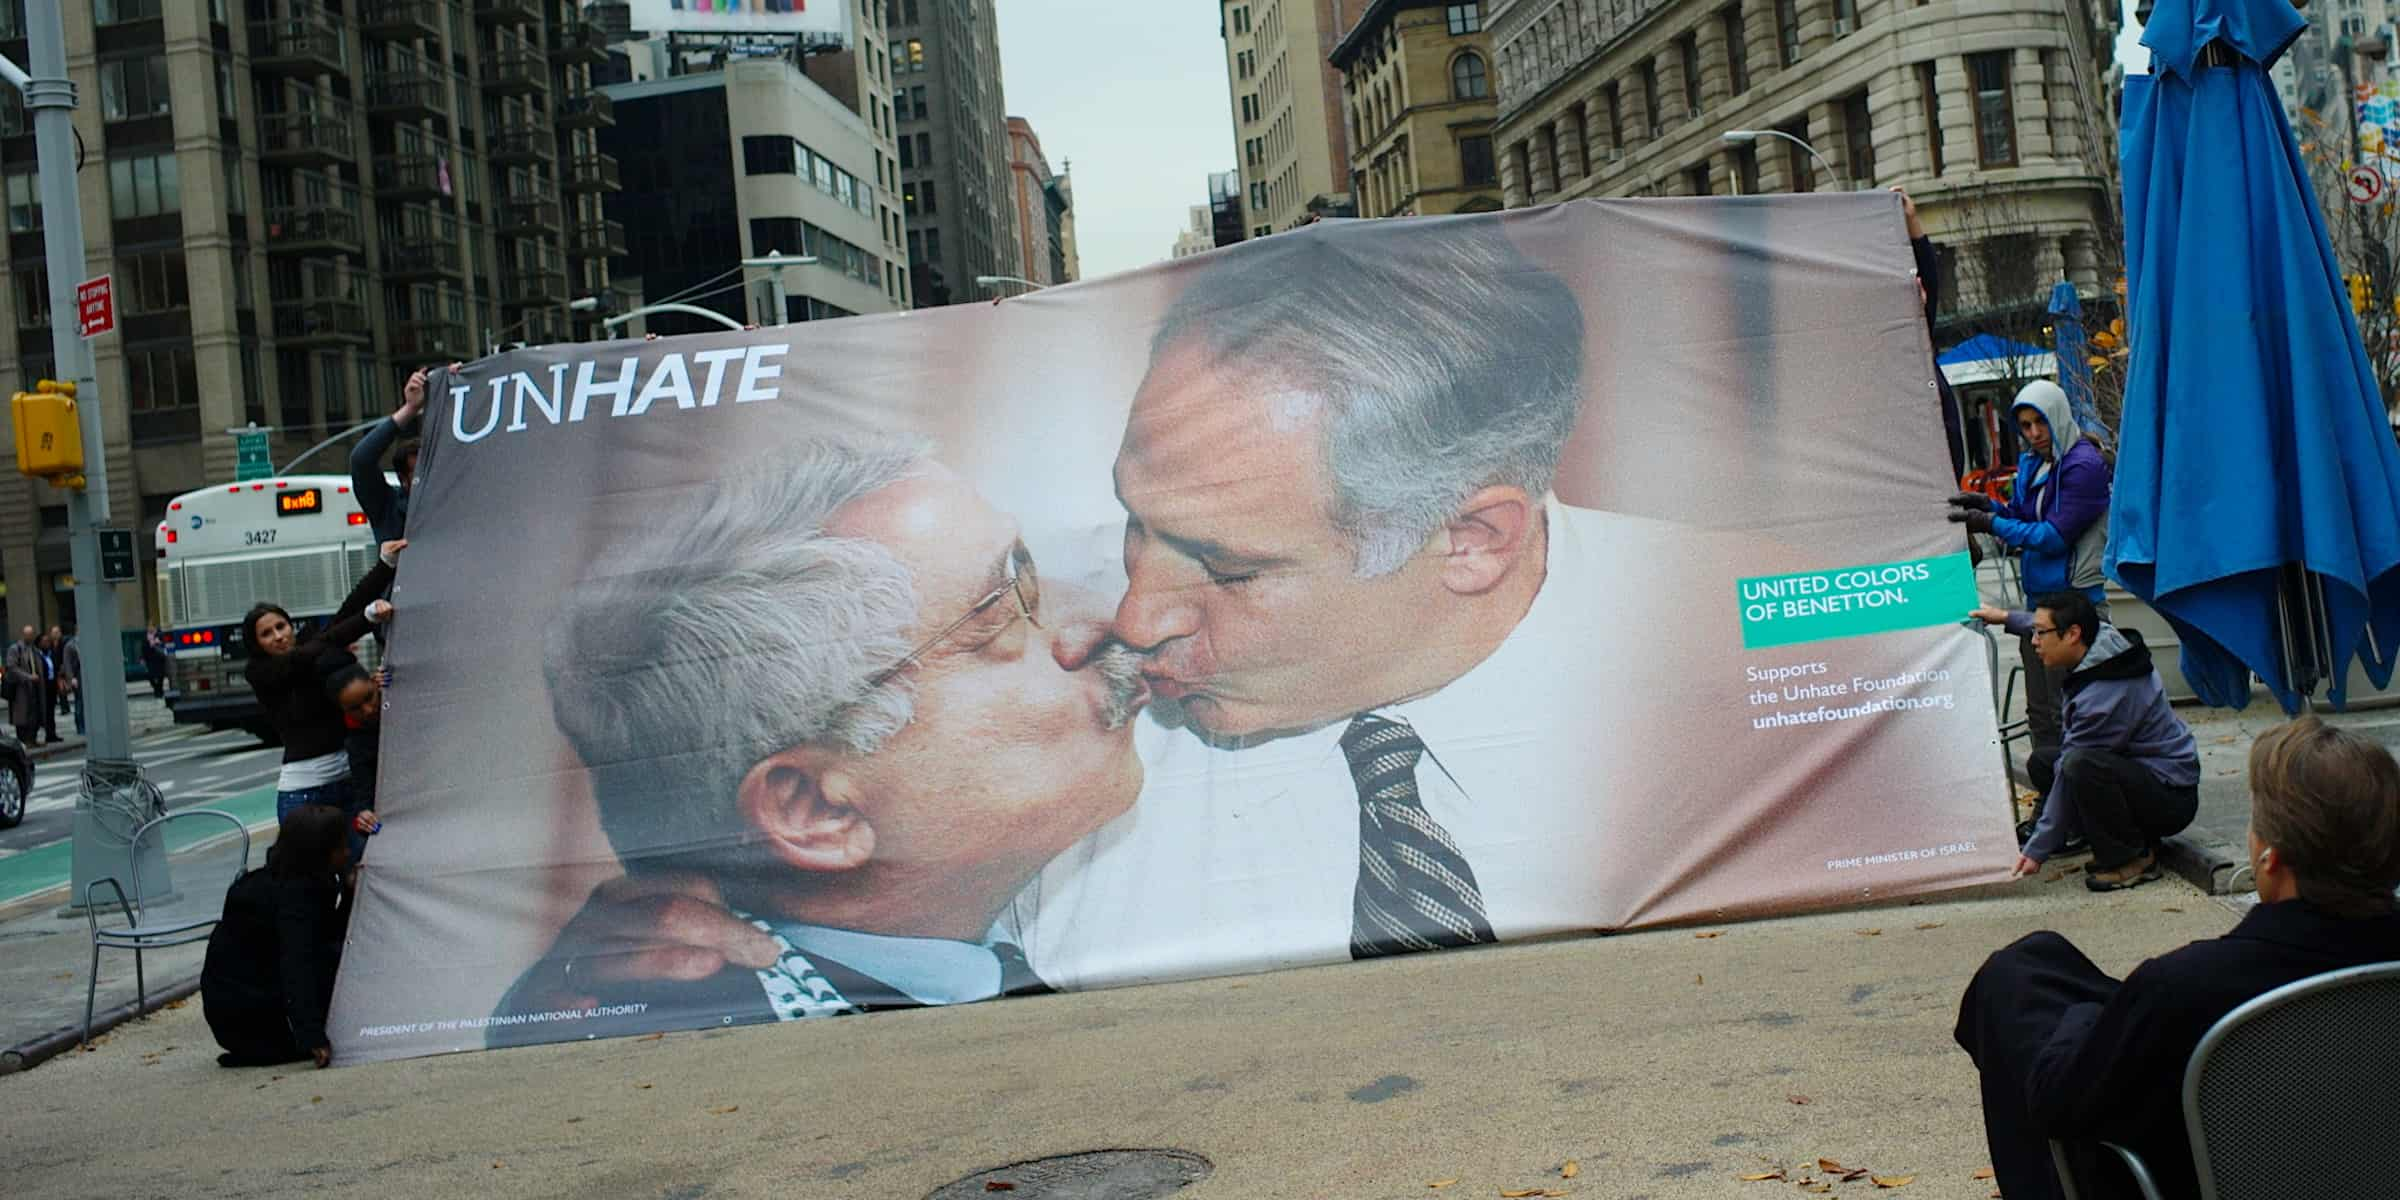 Benetton Brand Activism Marketing Activation UnHate Campaign - New York City